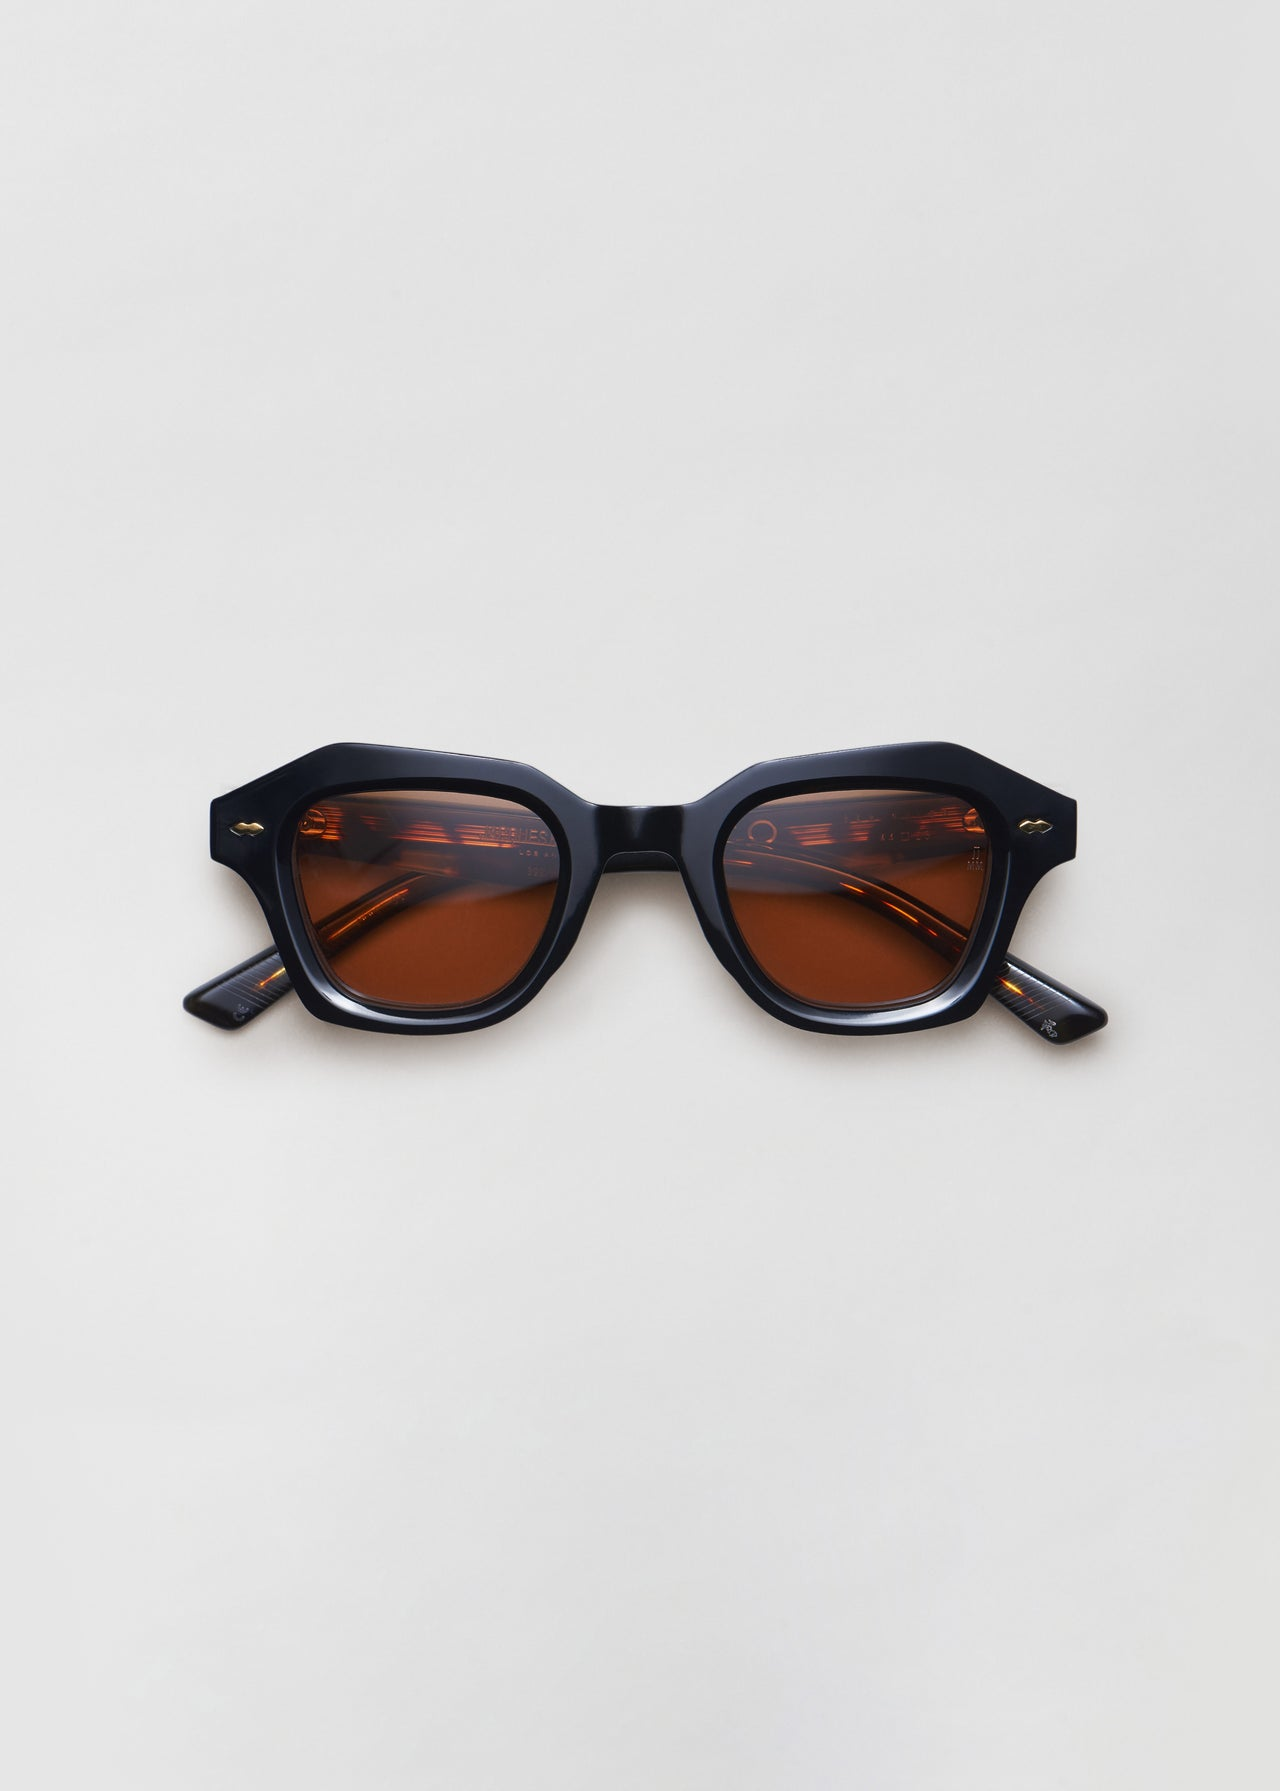 Schindler Sunglasses in Noir